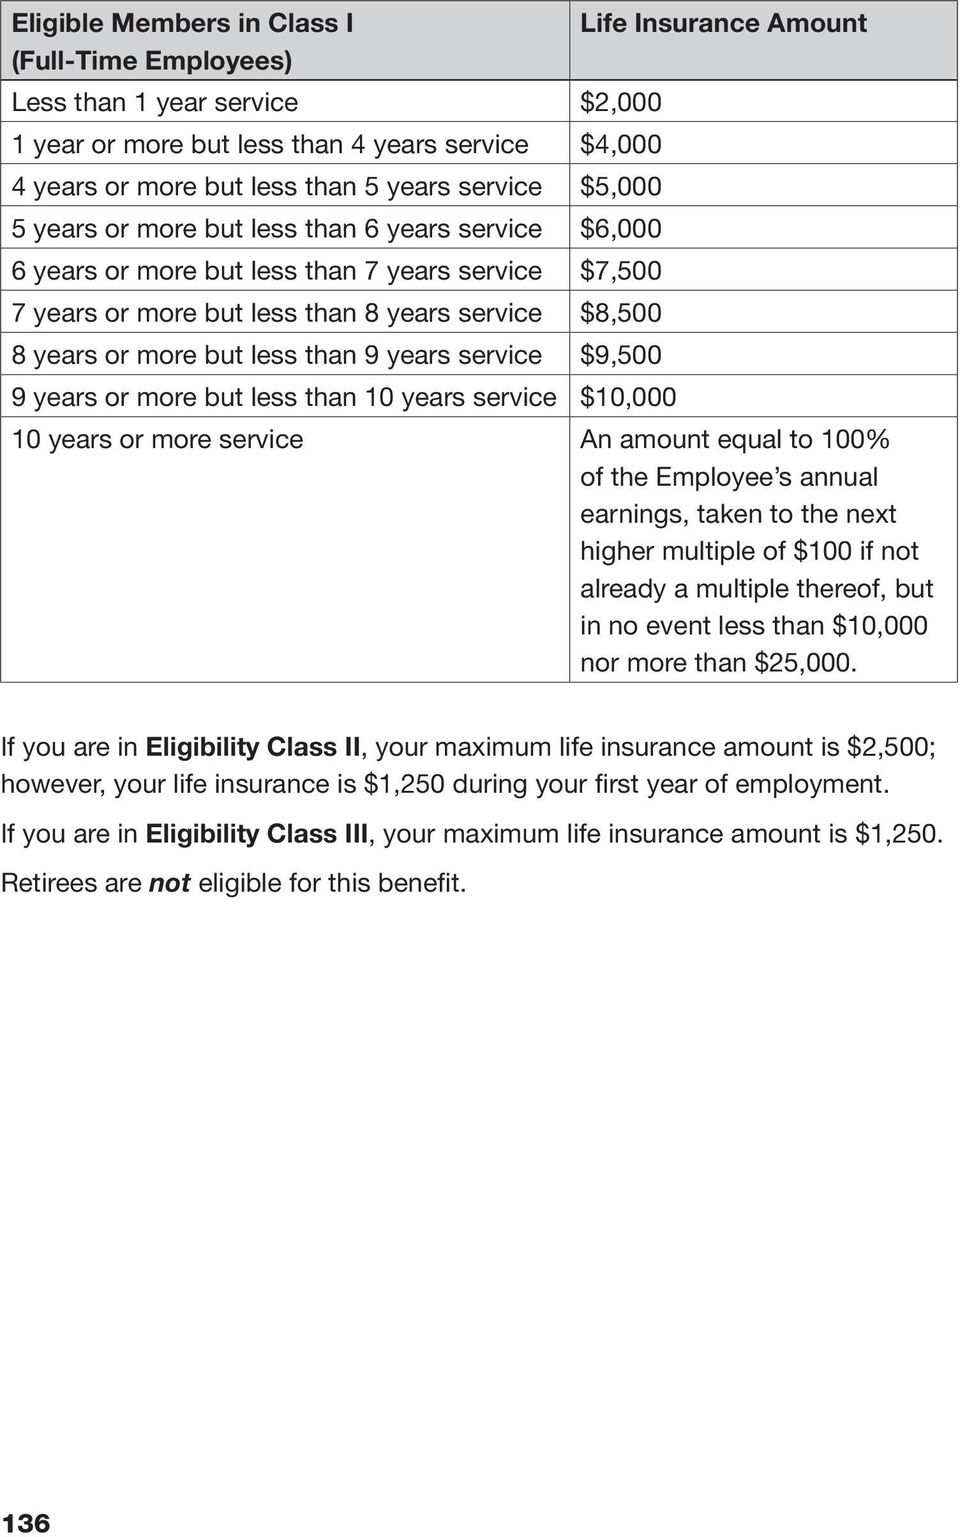 $9,500 9 years or more but less than 10 years service $10,000 Life Insurance Amount 10 years or more service An amount equal to 100% of the Employee s annual earnings, taken to the next higher